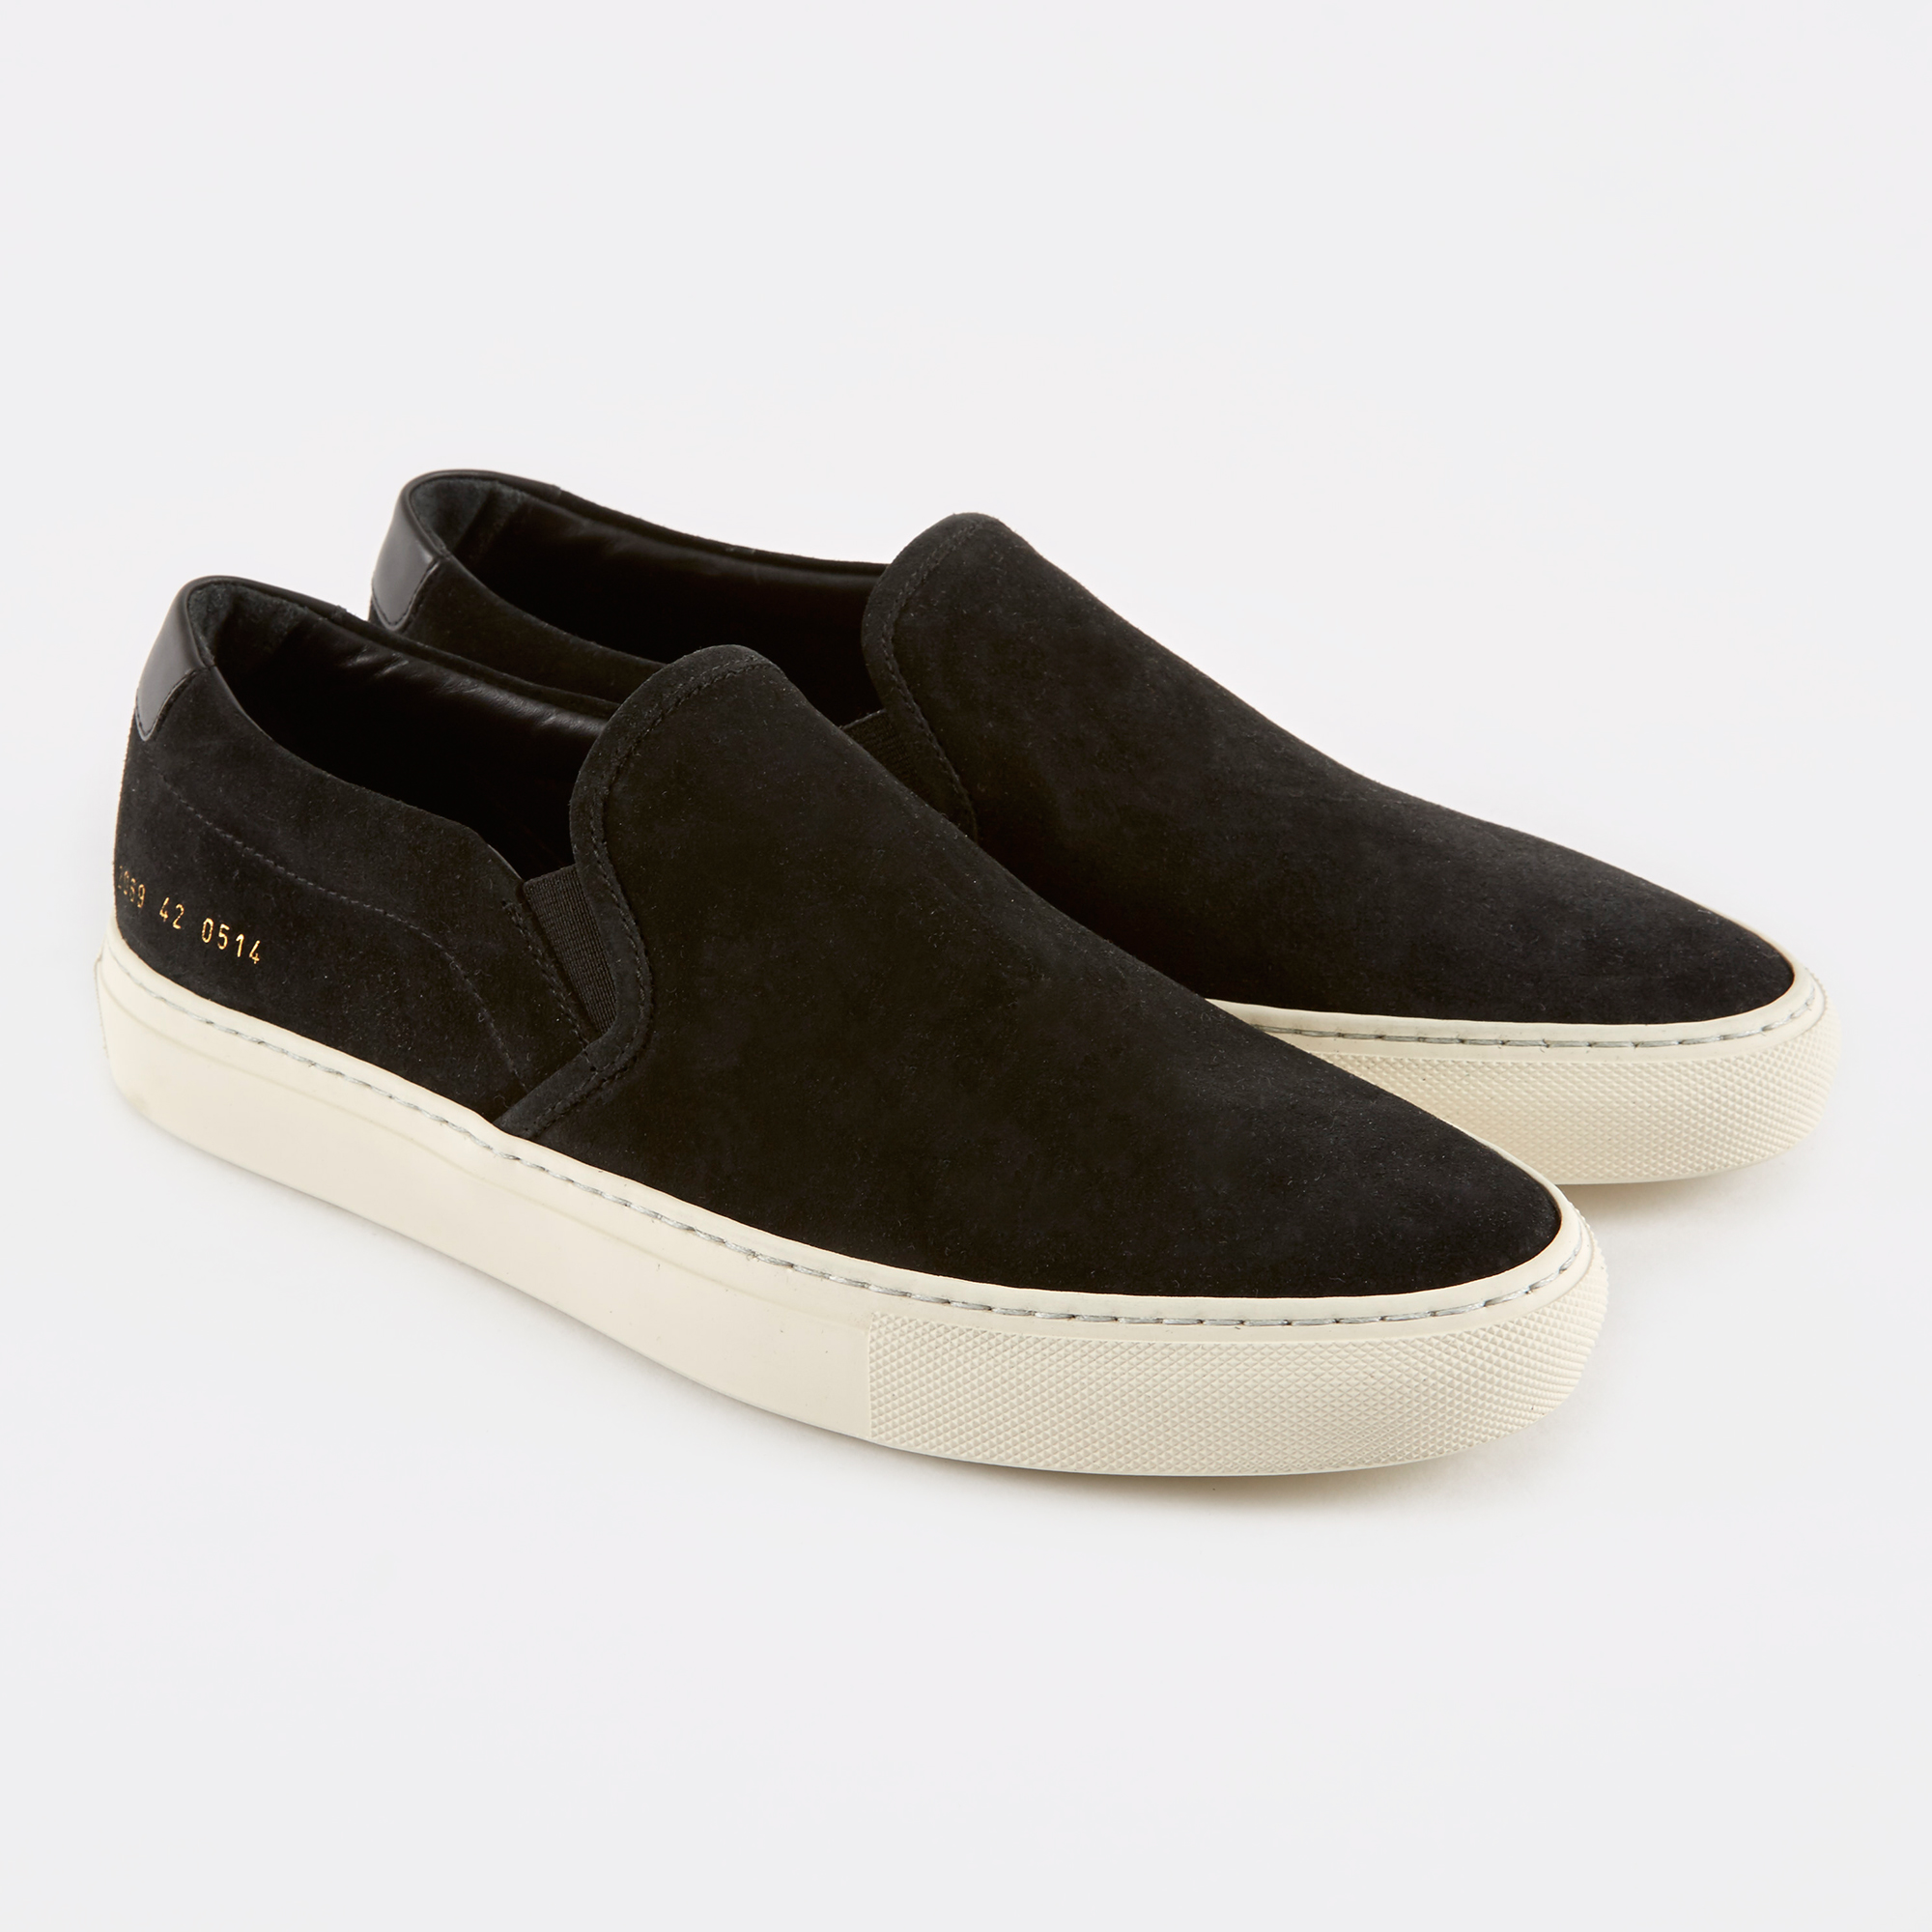 Common Projects Slip-On Retro Low Suede - Black 1e8d1ce15a43